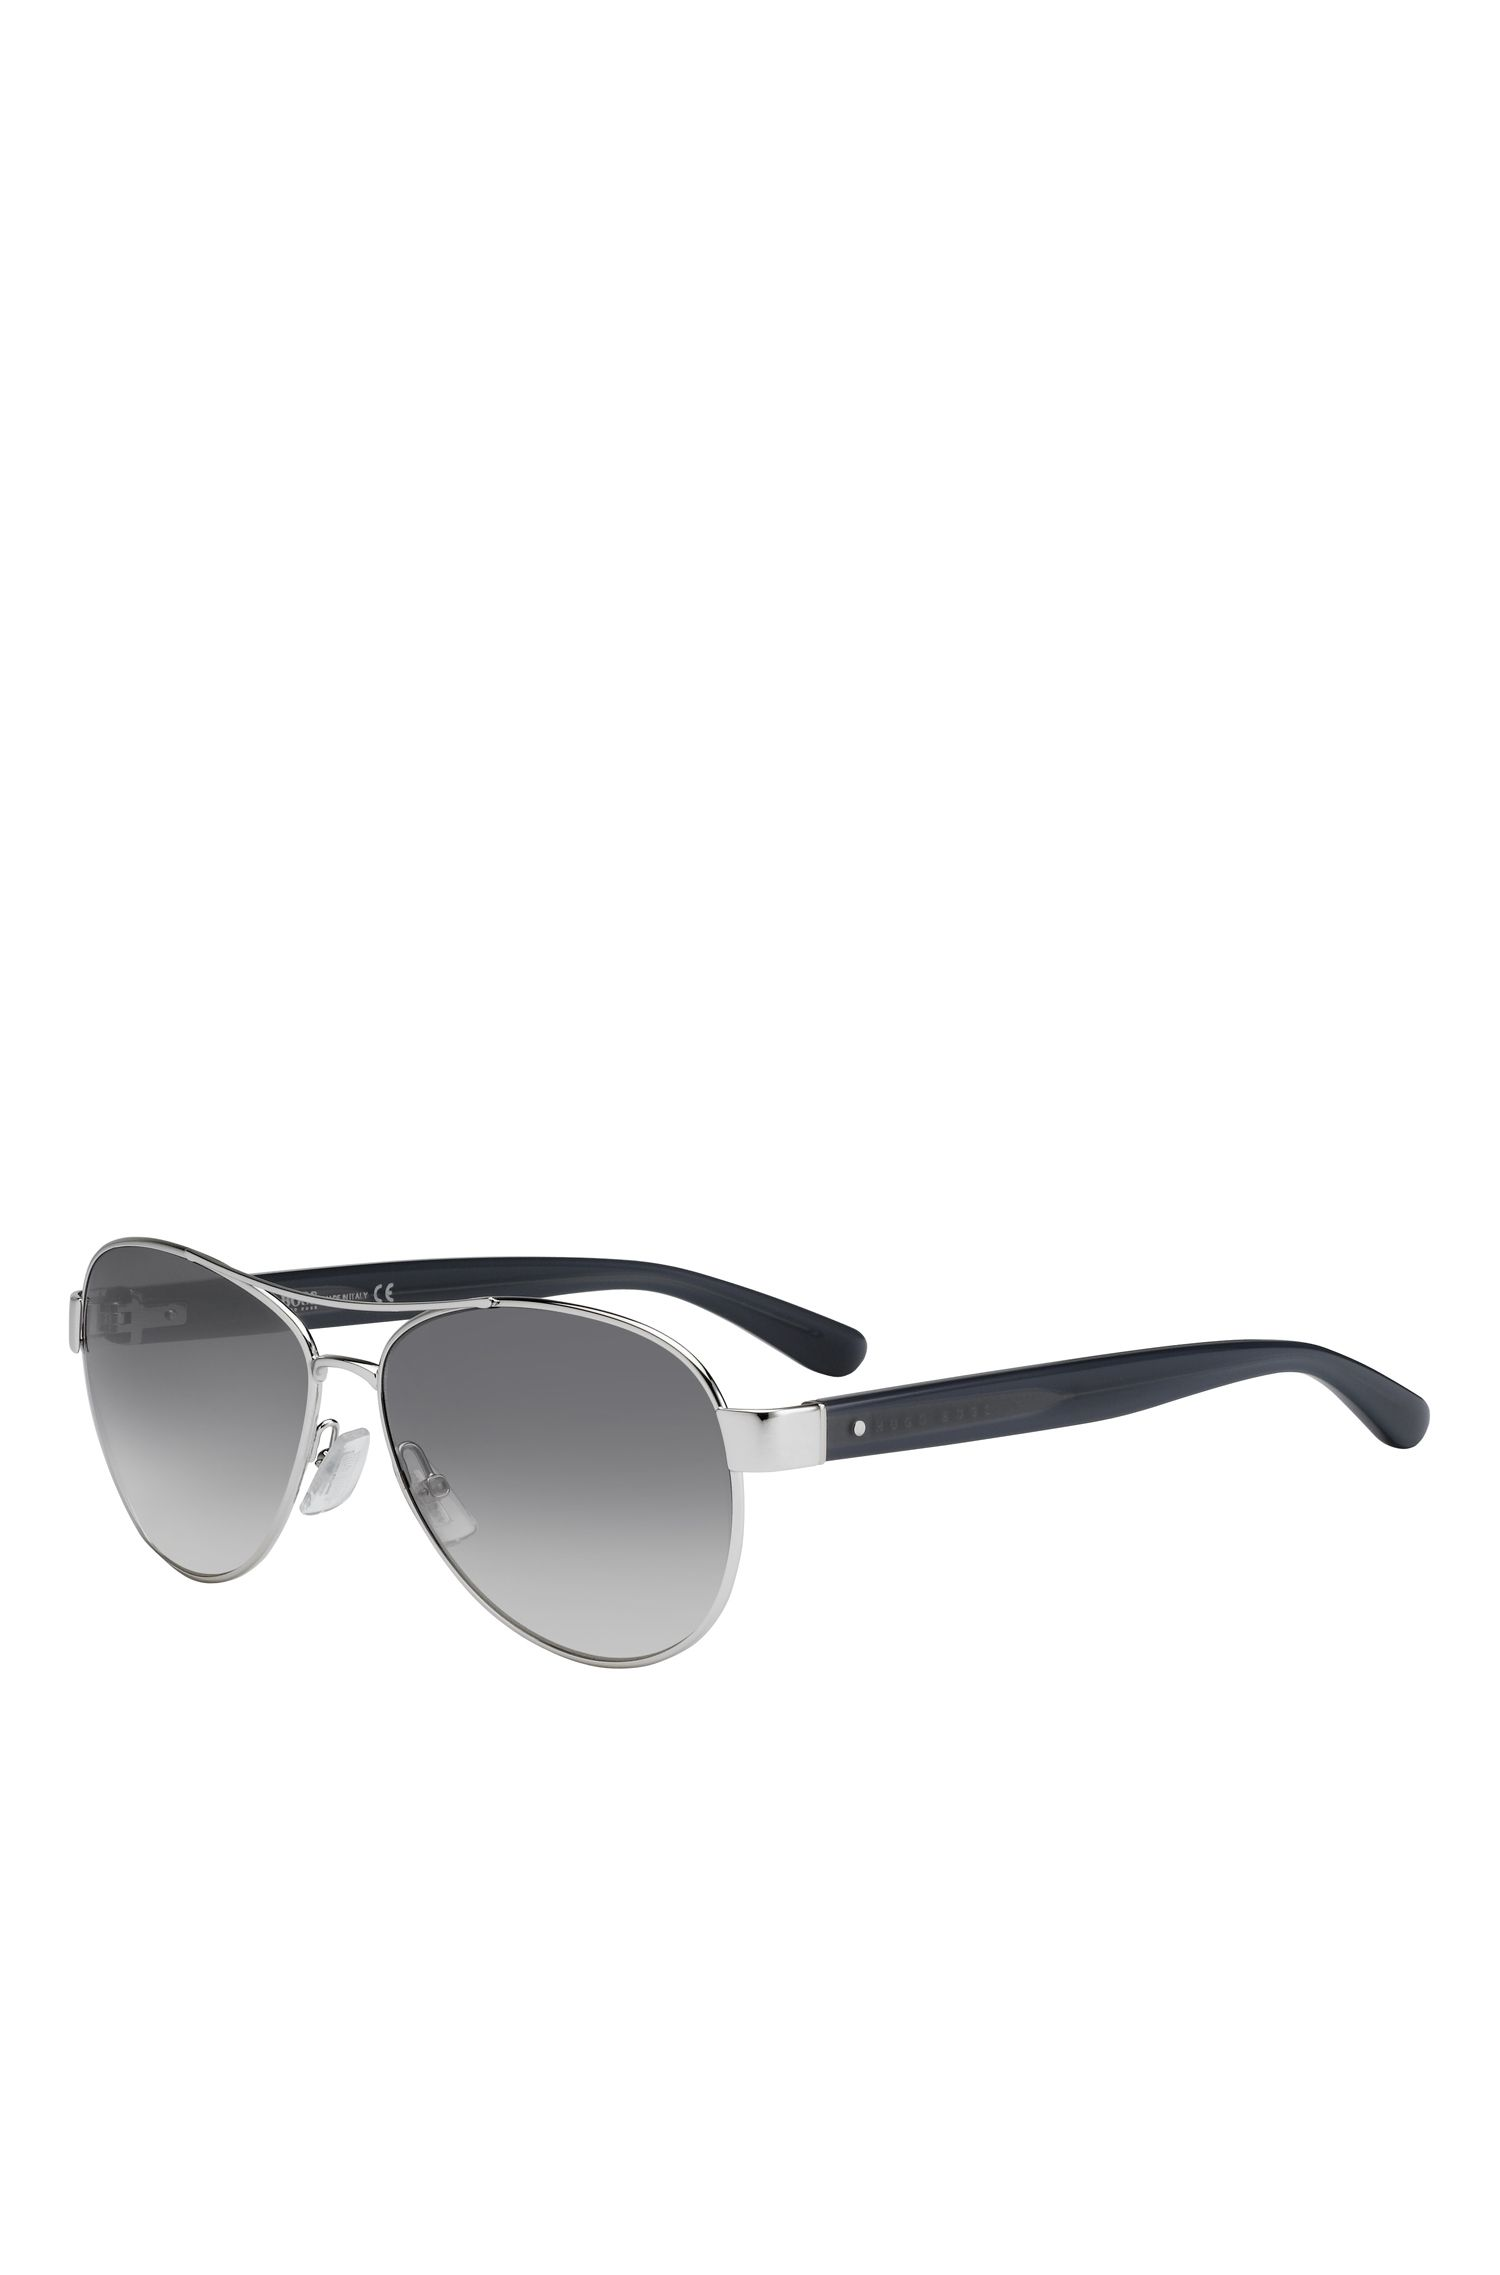 Mirror Lens Aviator Sunglasses | BOSS 0788S